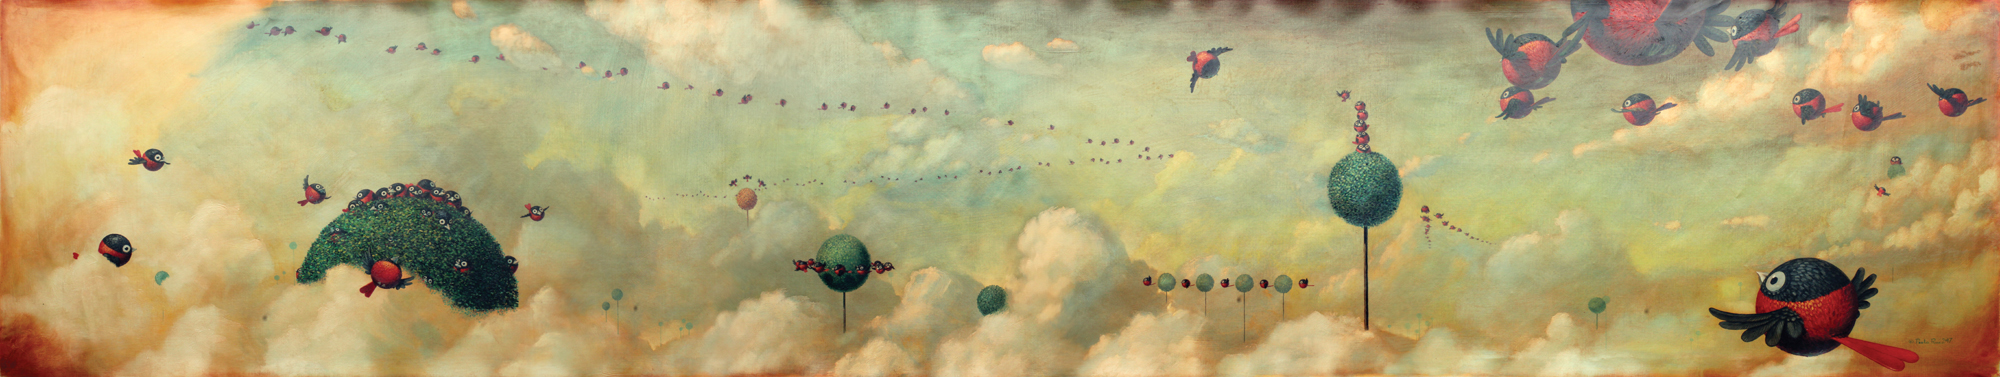 © Paolo Rui; painting; acrylic and oil on canvas; surreal; birds; Red Oriole; airspace; migration; Taiwanese birds; curiosity